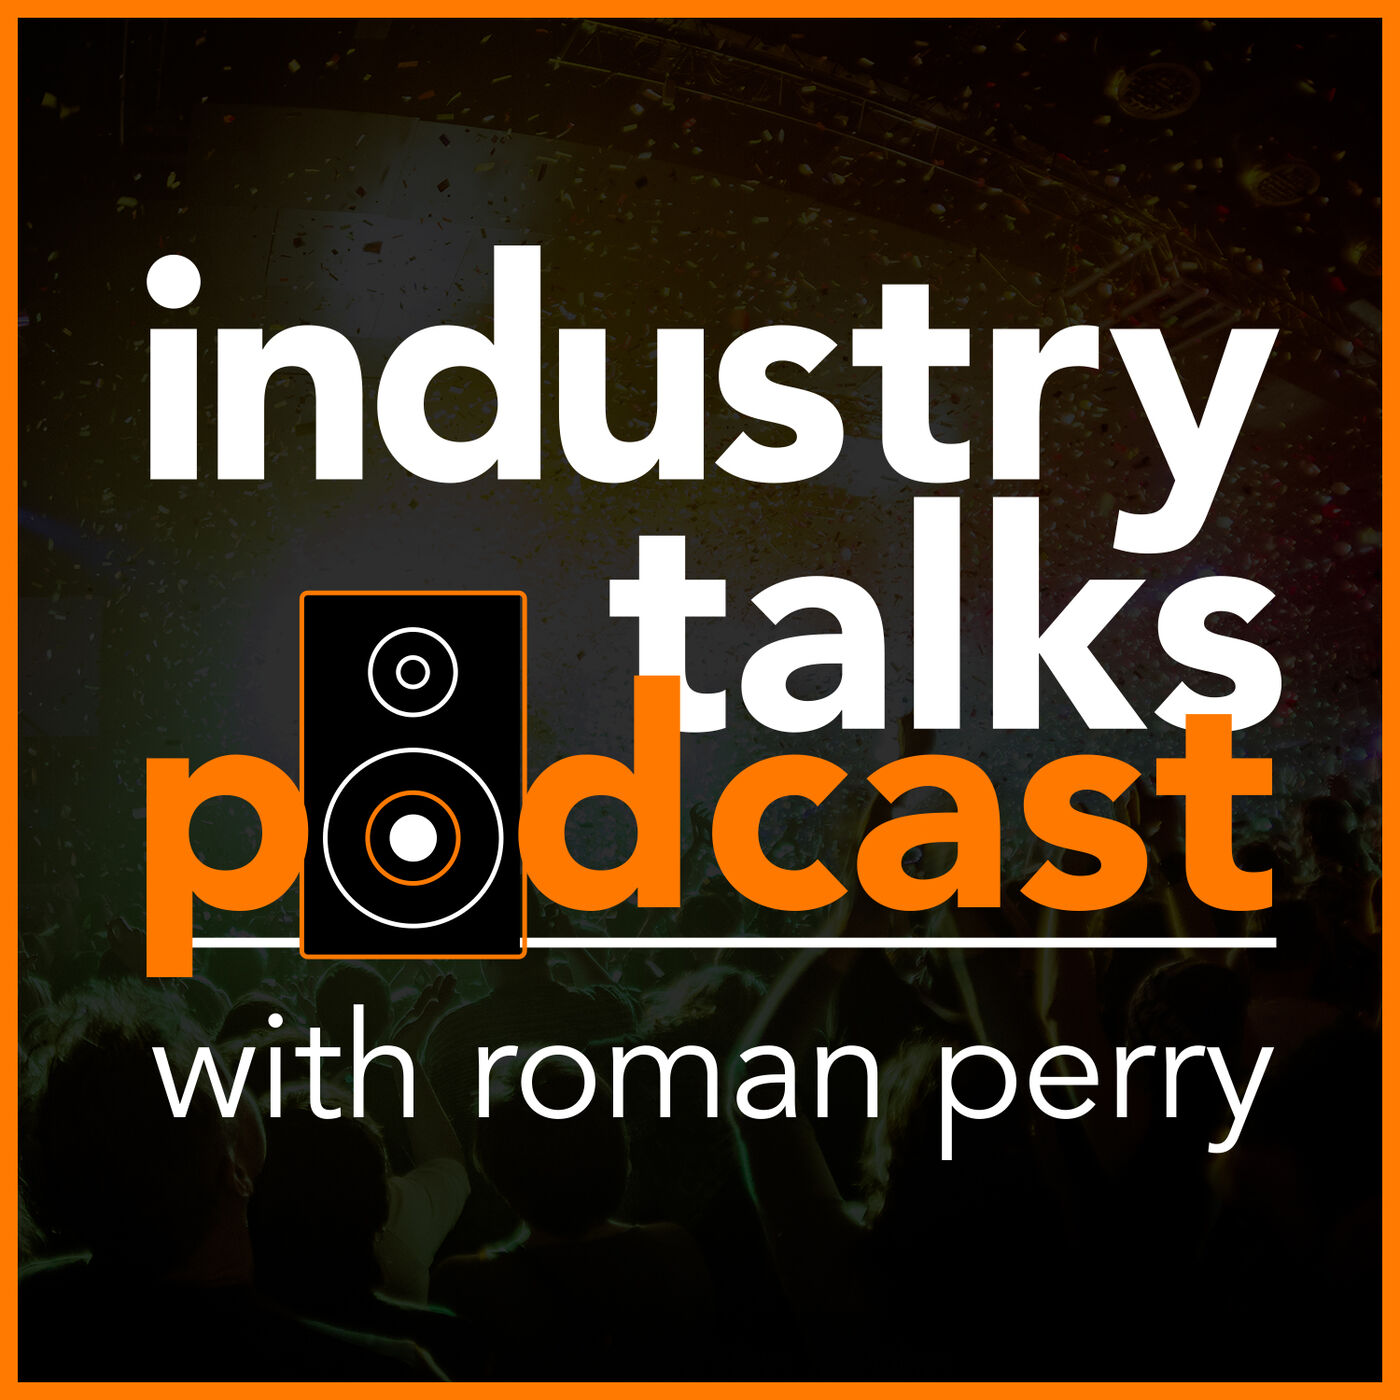 Industry Talks Podcast | Listen via Stitcher for Podcasts